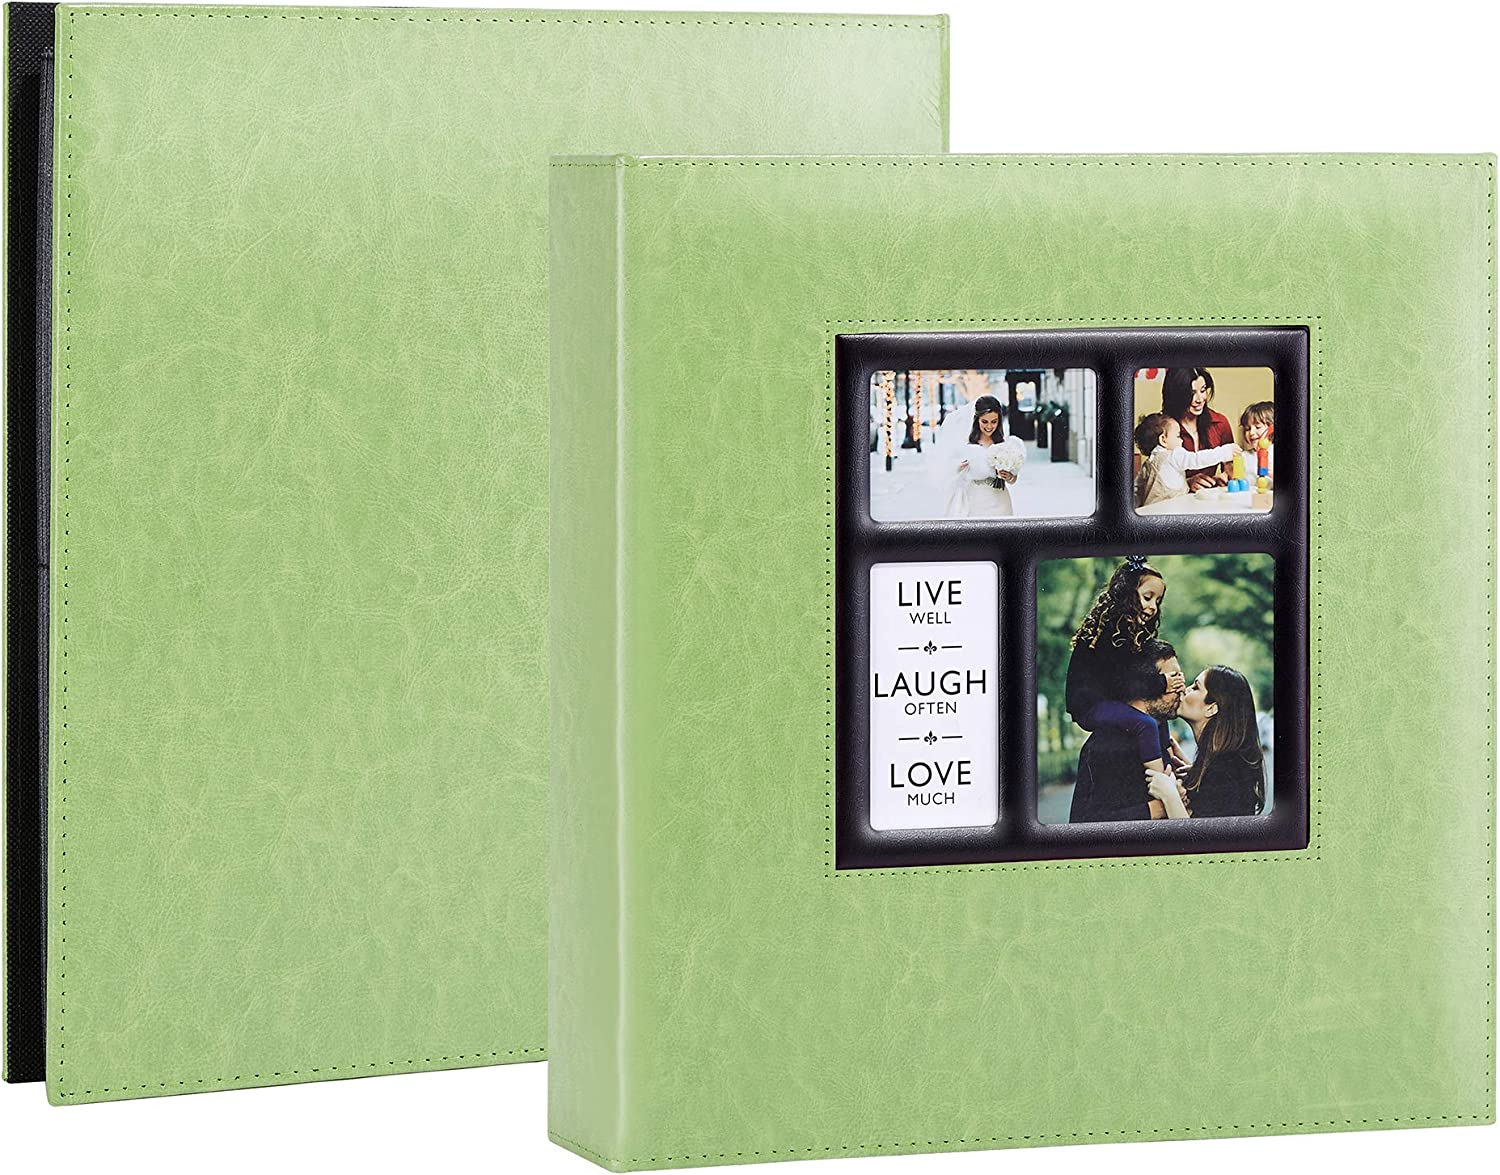 Artmag Photo Album 4x6 600 Photos, Large Capacity Wedding Family Leather Cover Picture Albums Holds 600 Horizontal and Vertical 4x6 Photos with Black Pages (Green)